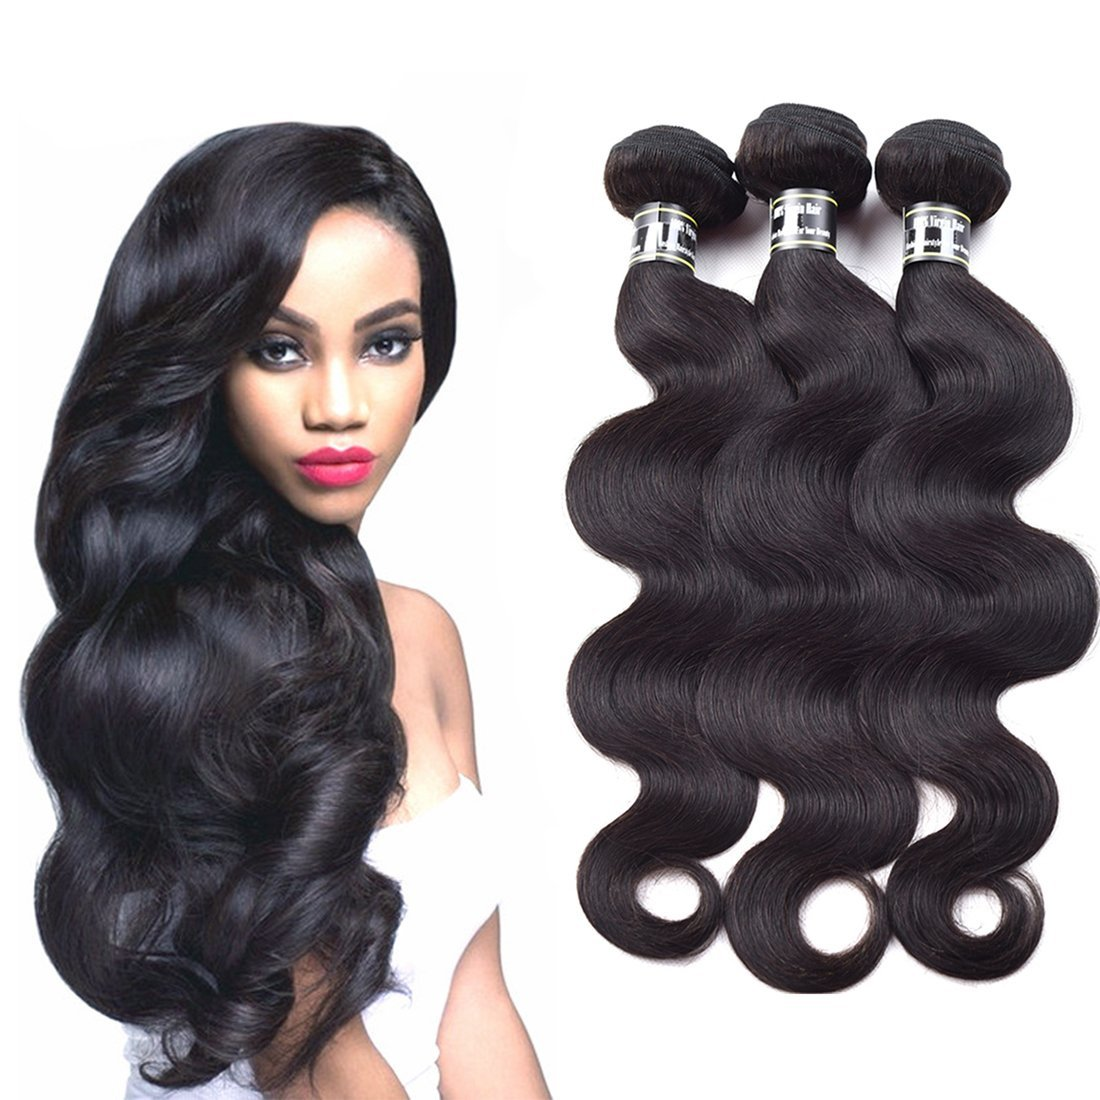 Cheap 24 Inch Body Wave Find 24 Inch Body Wave Deals On Line At